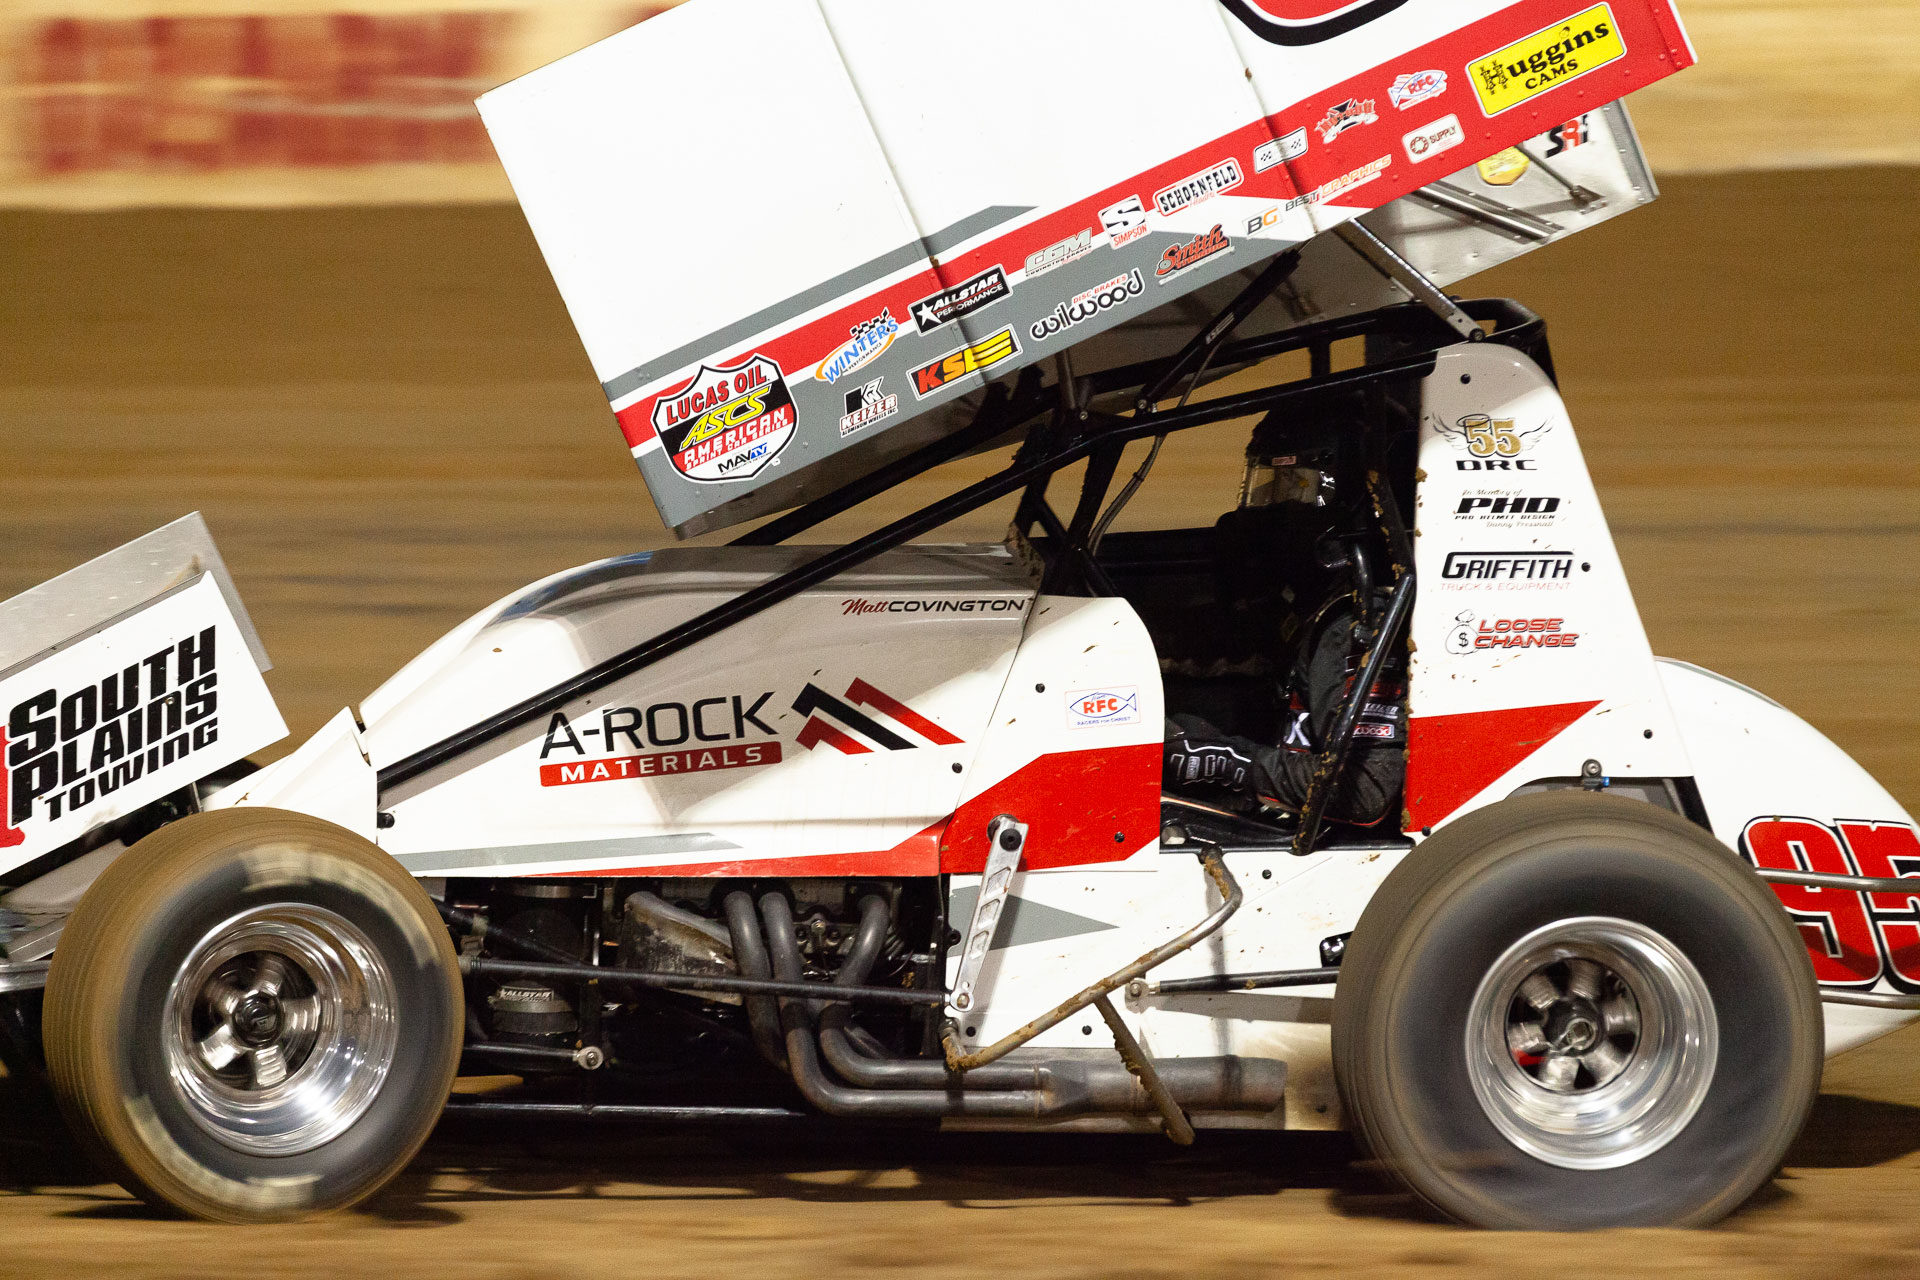 No.95 Matt Covington running hard out of turn 2 at Lake Ozark Speedway during the ASCS 360 Sprint Car A Feature on night 1 of the Memorial Weekend Sprint and Midget Nationals presented by The Drivers Project. ( Jeffrey Turford / TDP )